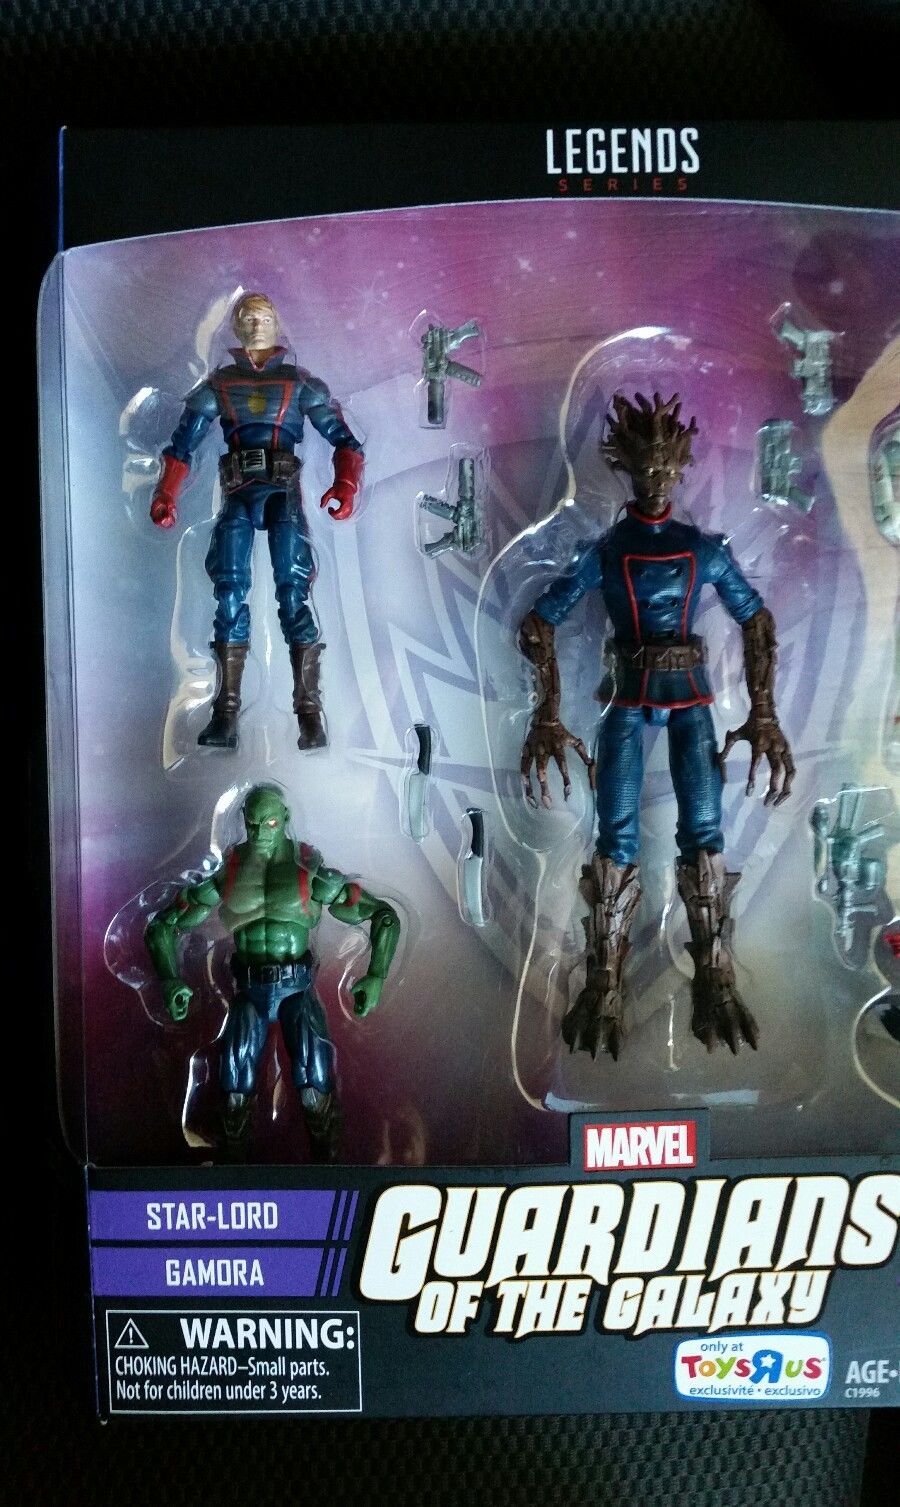 Toys r us exclusive marvel legends guardians of the galaxy for Galaxy toys